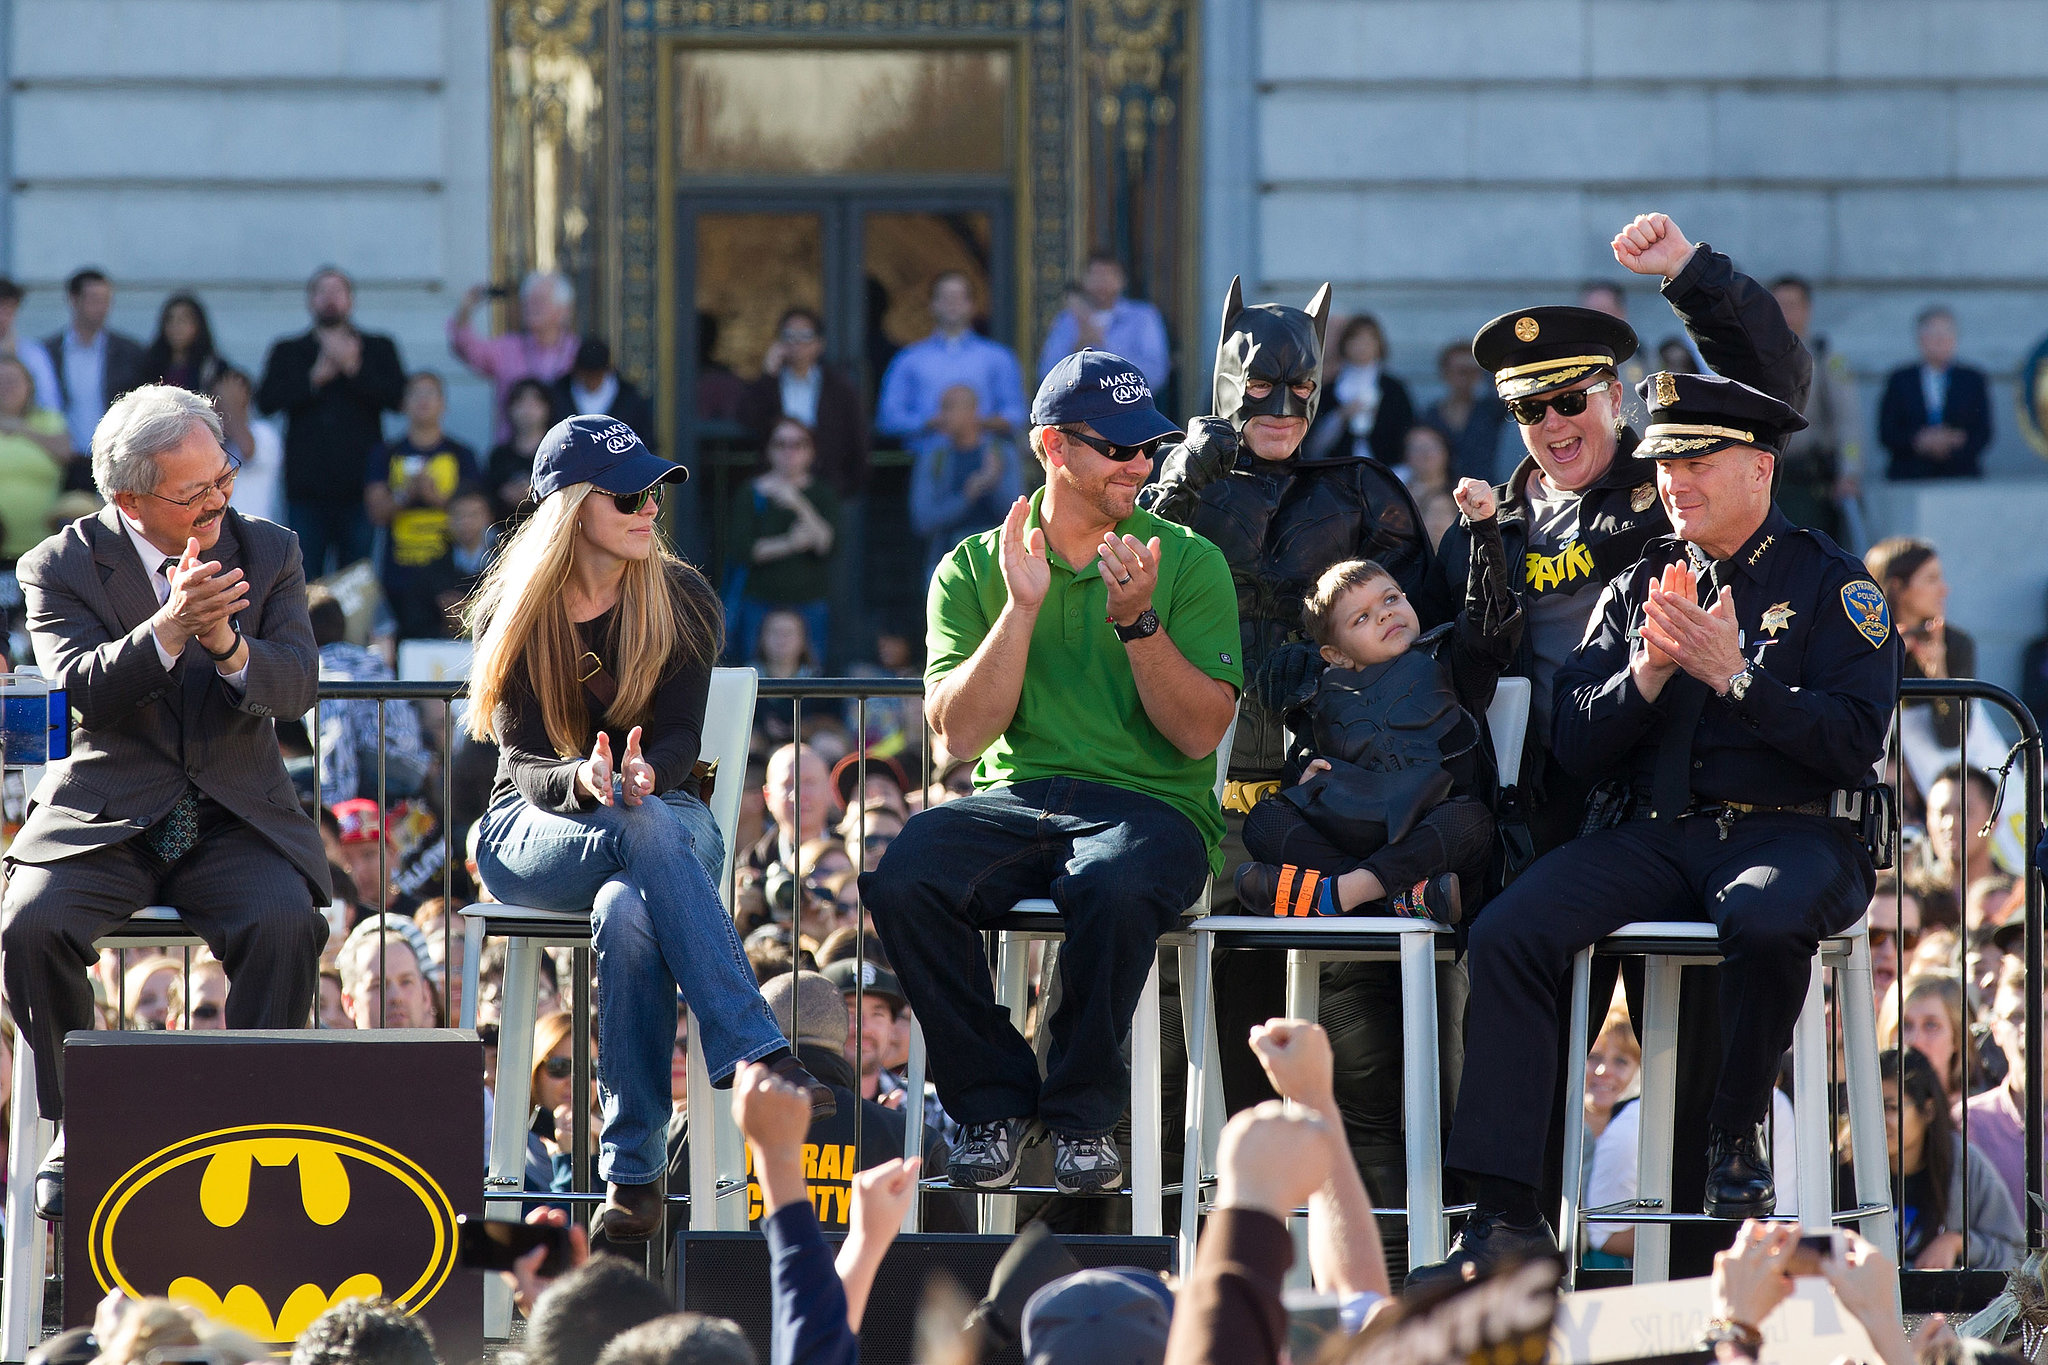 San Francisco's police chief celebrated with Batkid.